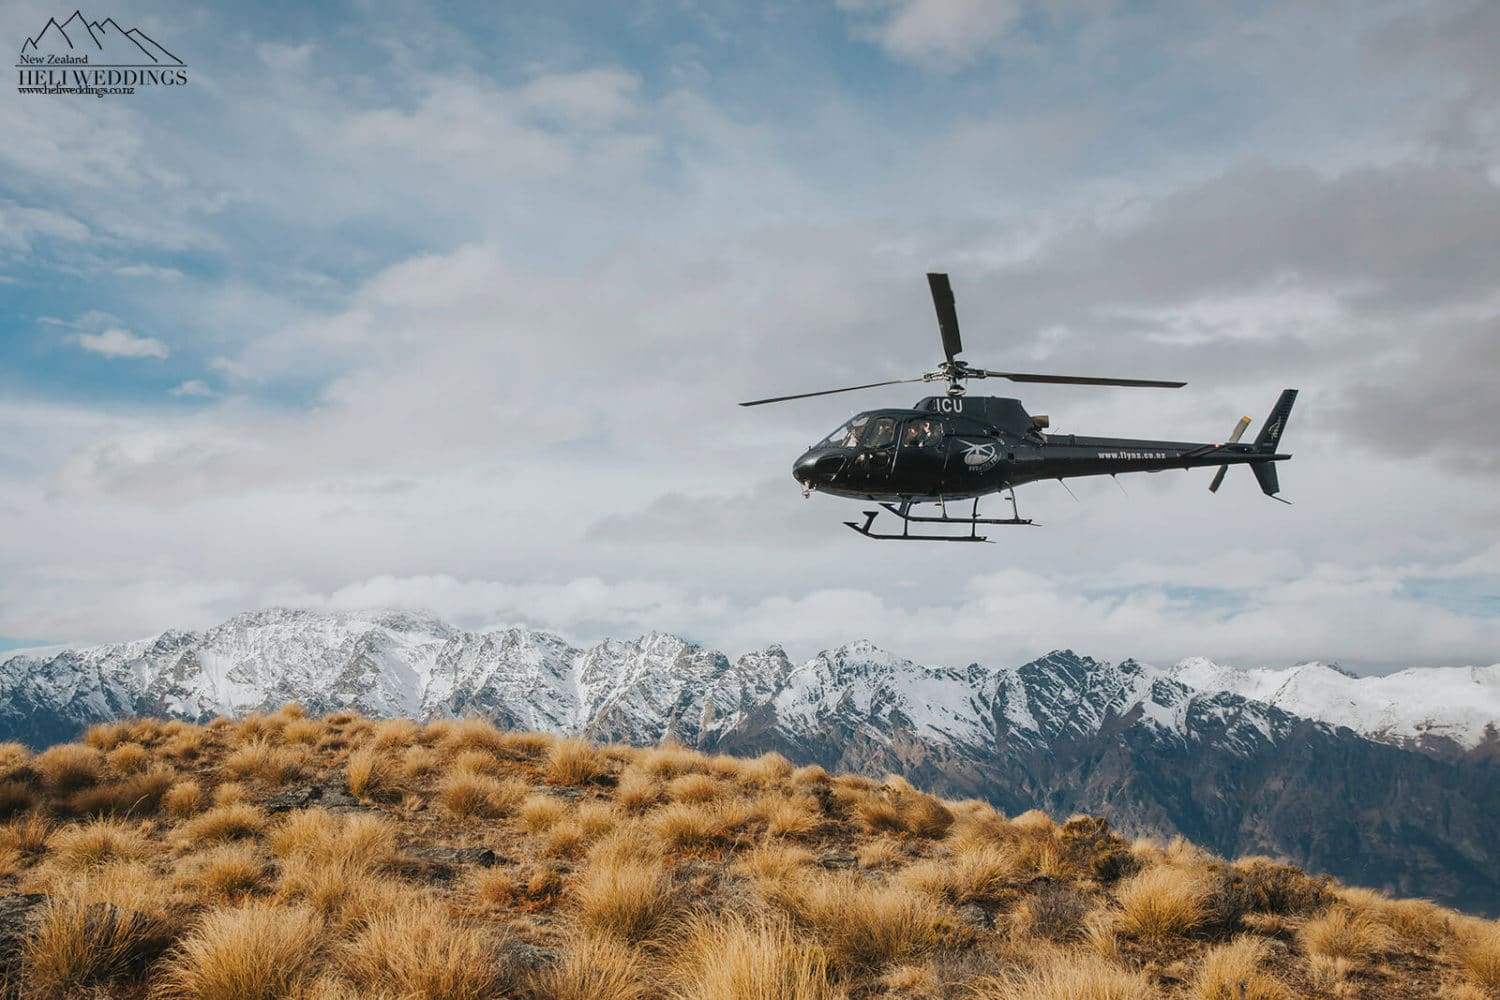 Helicopter arriving to mountain wedding with guests